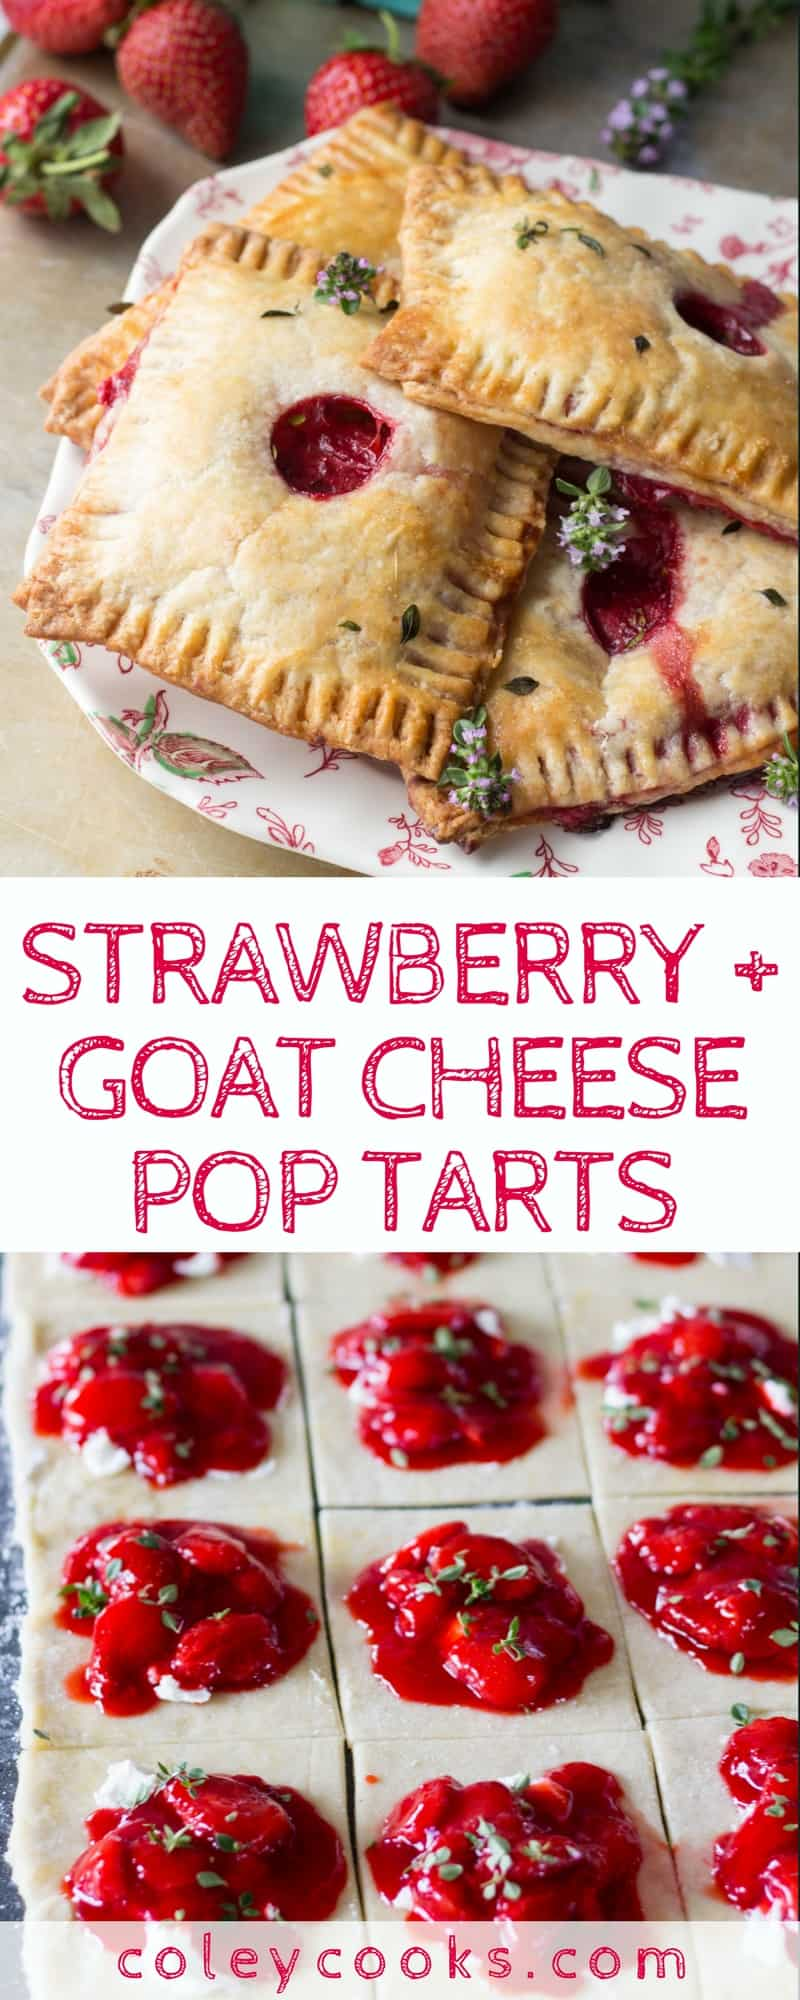 STRAWBERRY + GOAT CHEESE POP TARTS   This sweet and savory combination of strawberries and goat cheese wrapped in a flaky pastry makes an amazing breakfast or brunch treat!   ColeyCooks.com